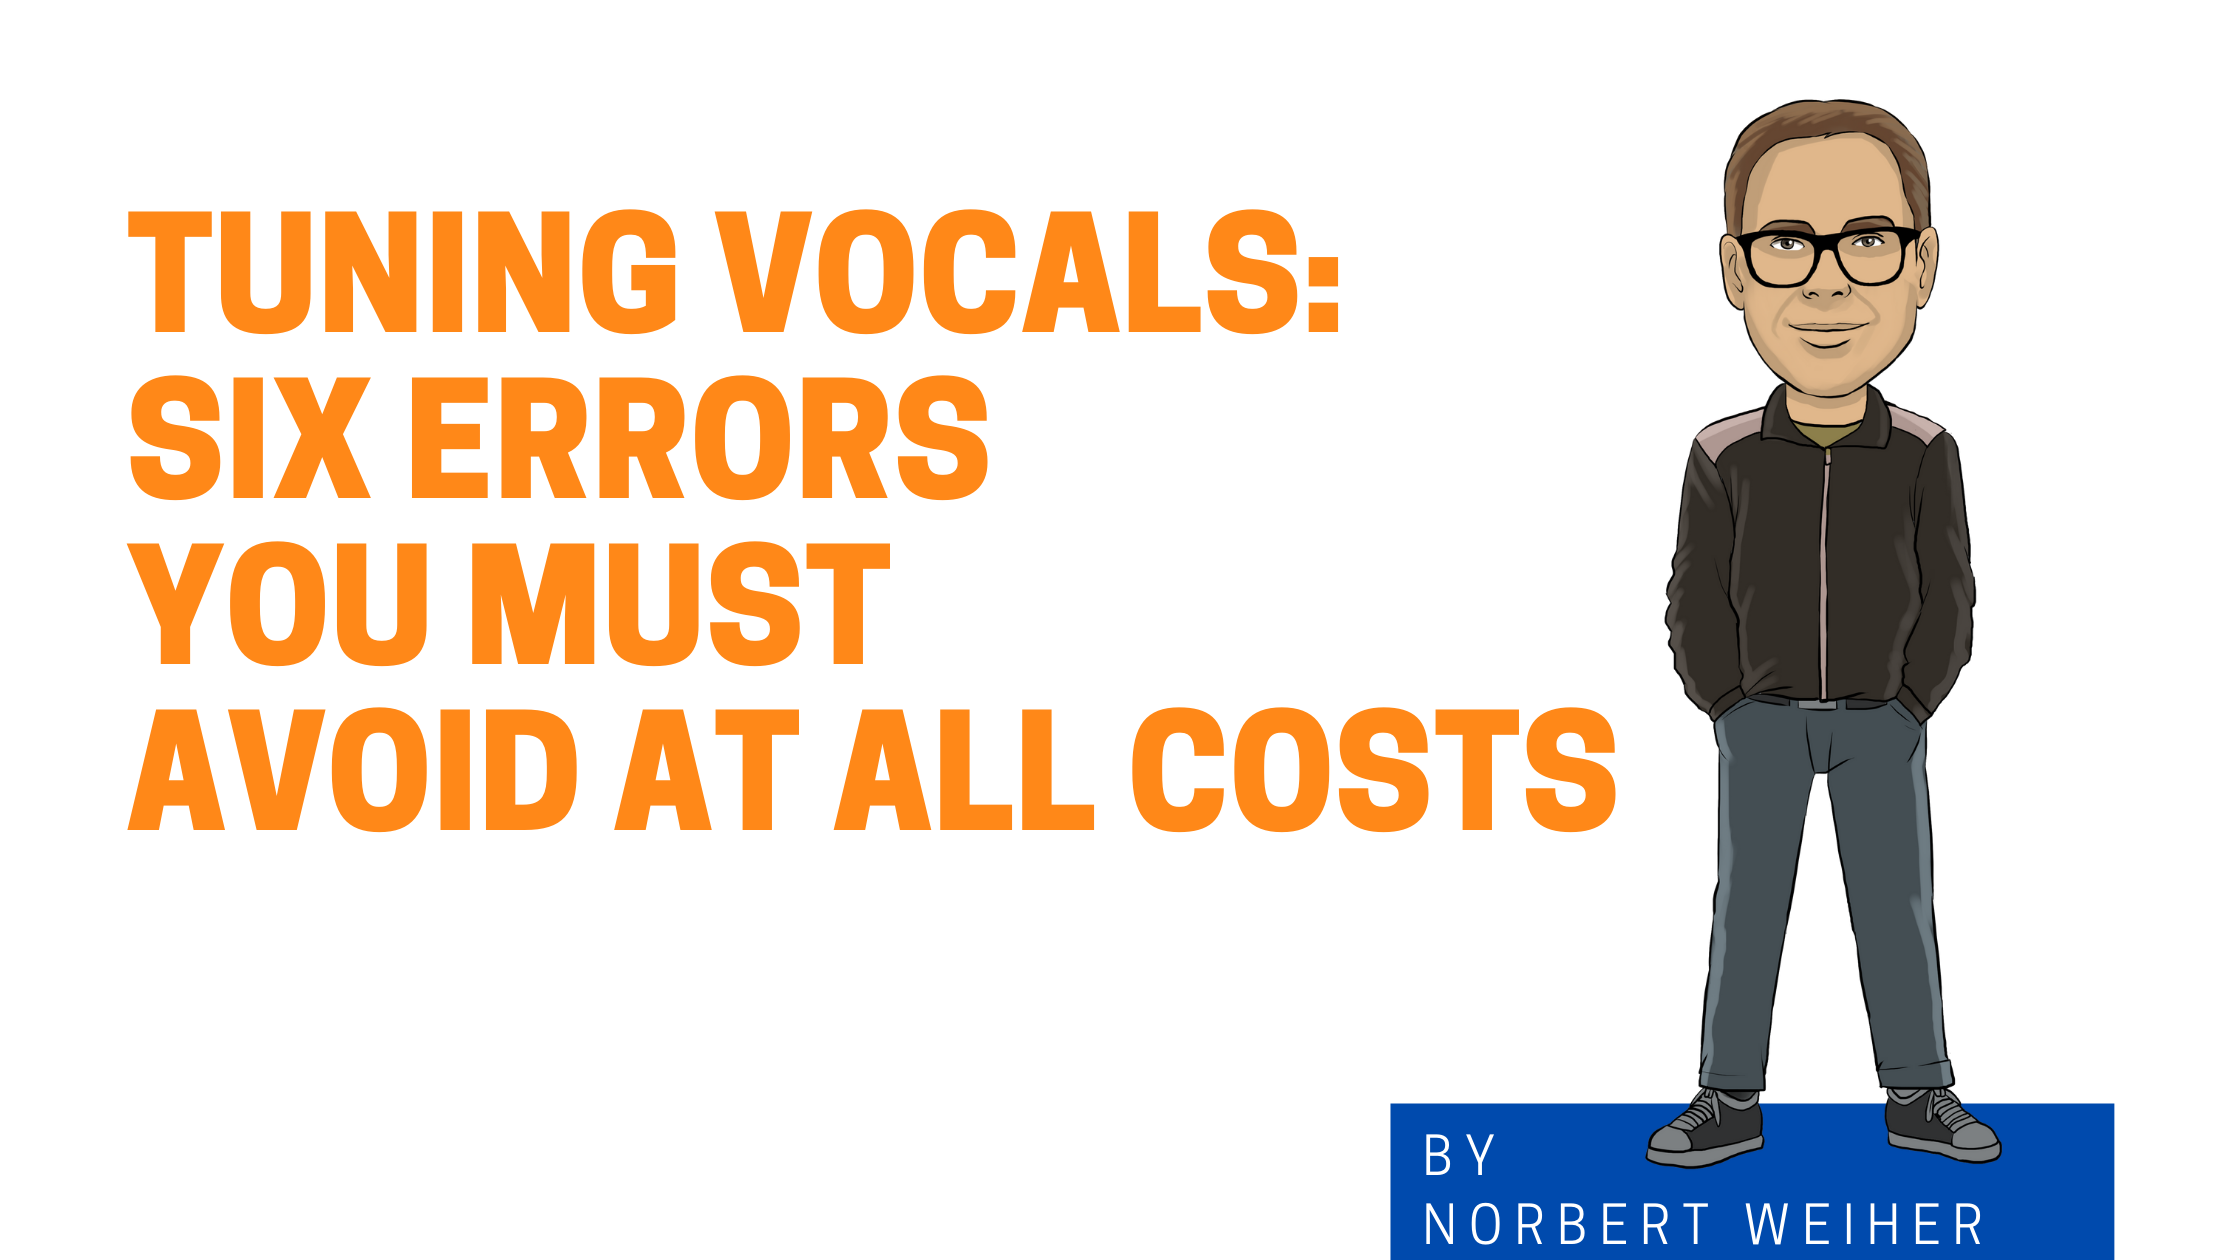 6 errors to avoid when tuning vocals